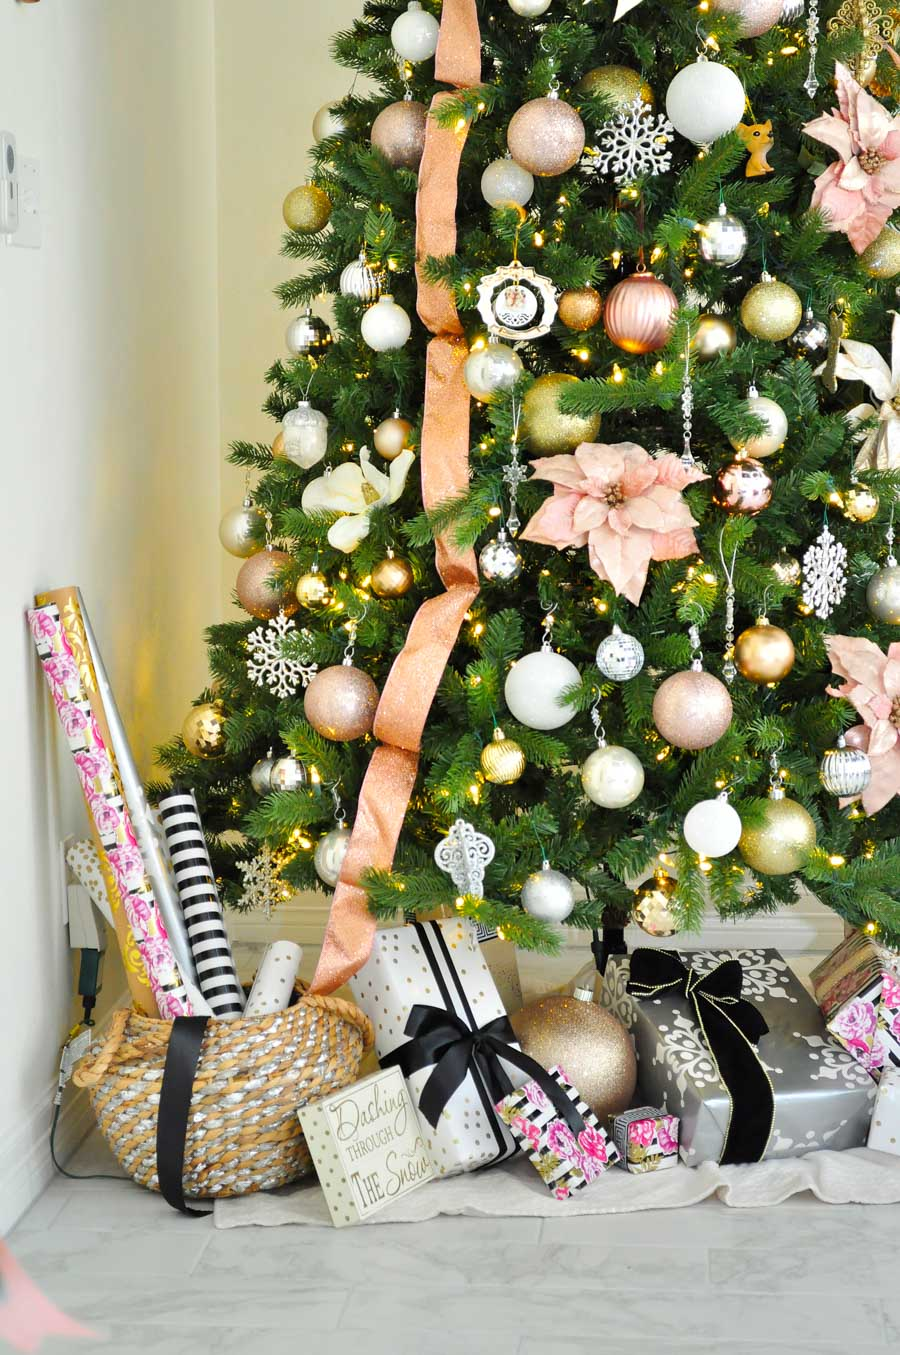 A lucite star tops this blush pink themed Christmas tree filled with pink and white poinsettias plus gold, silver and white ornaments. Such a feminine and classy look!